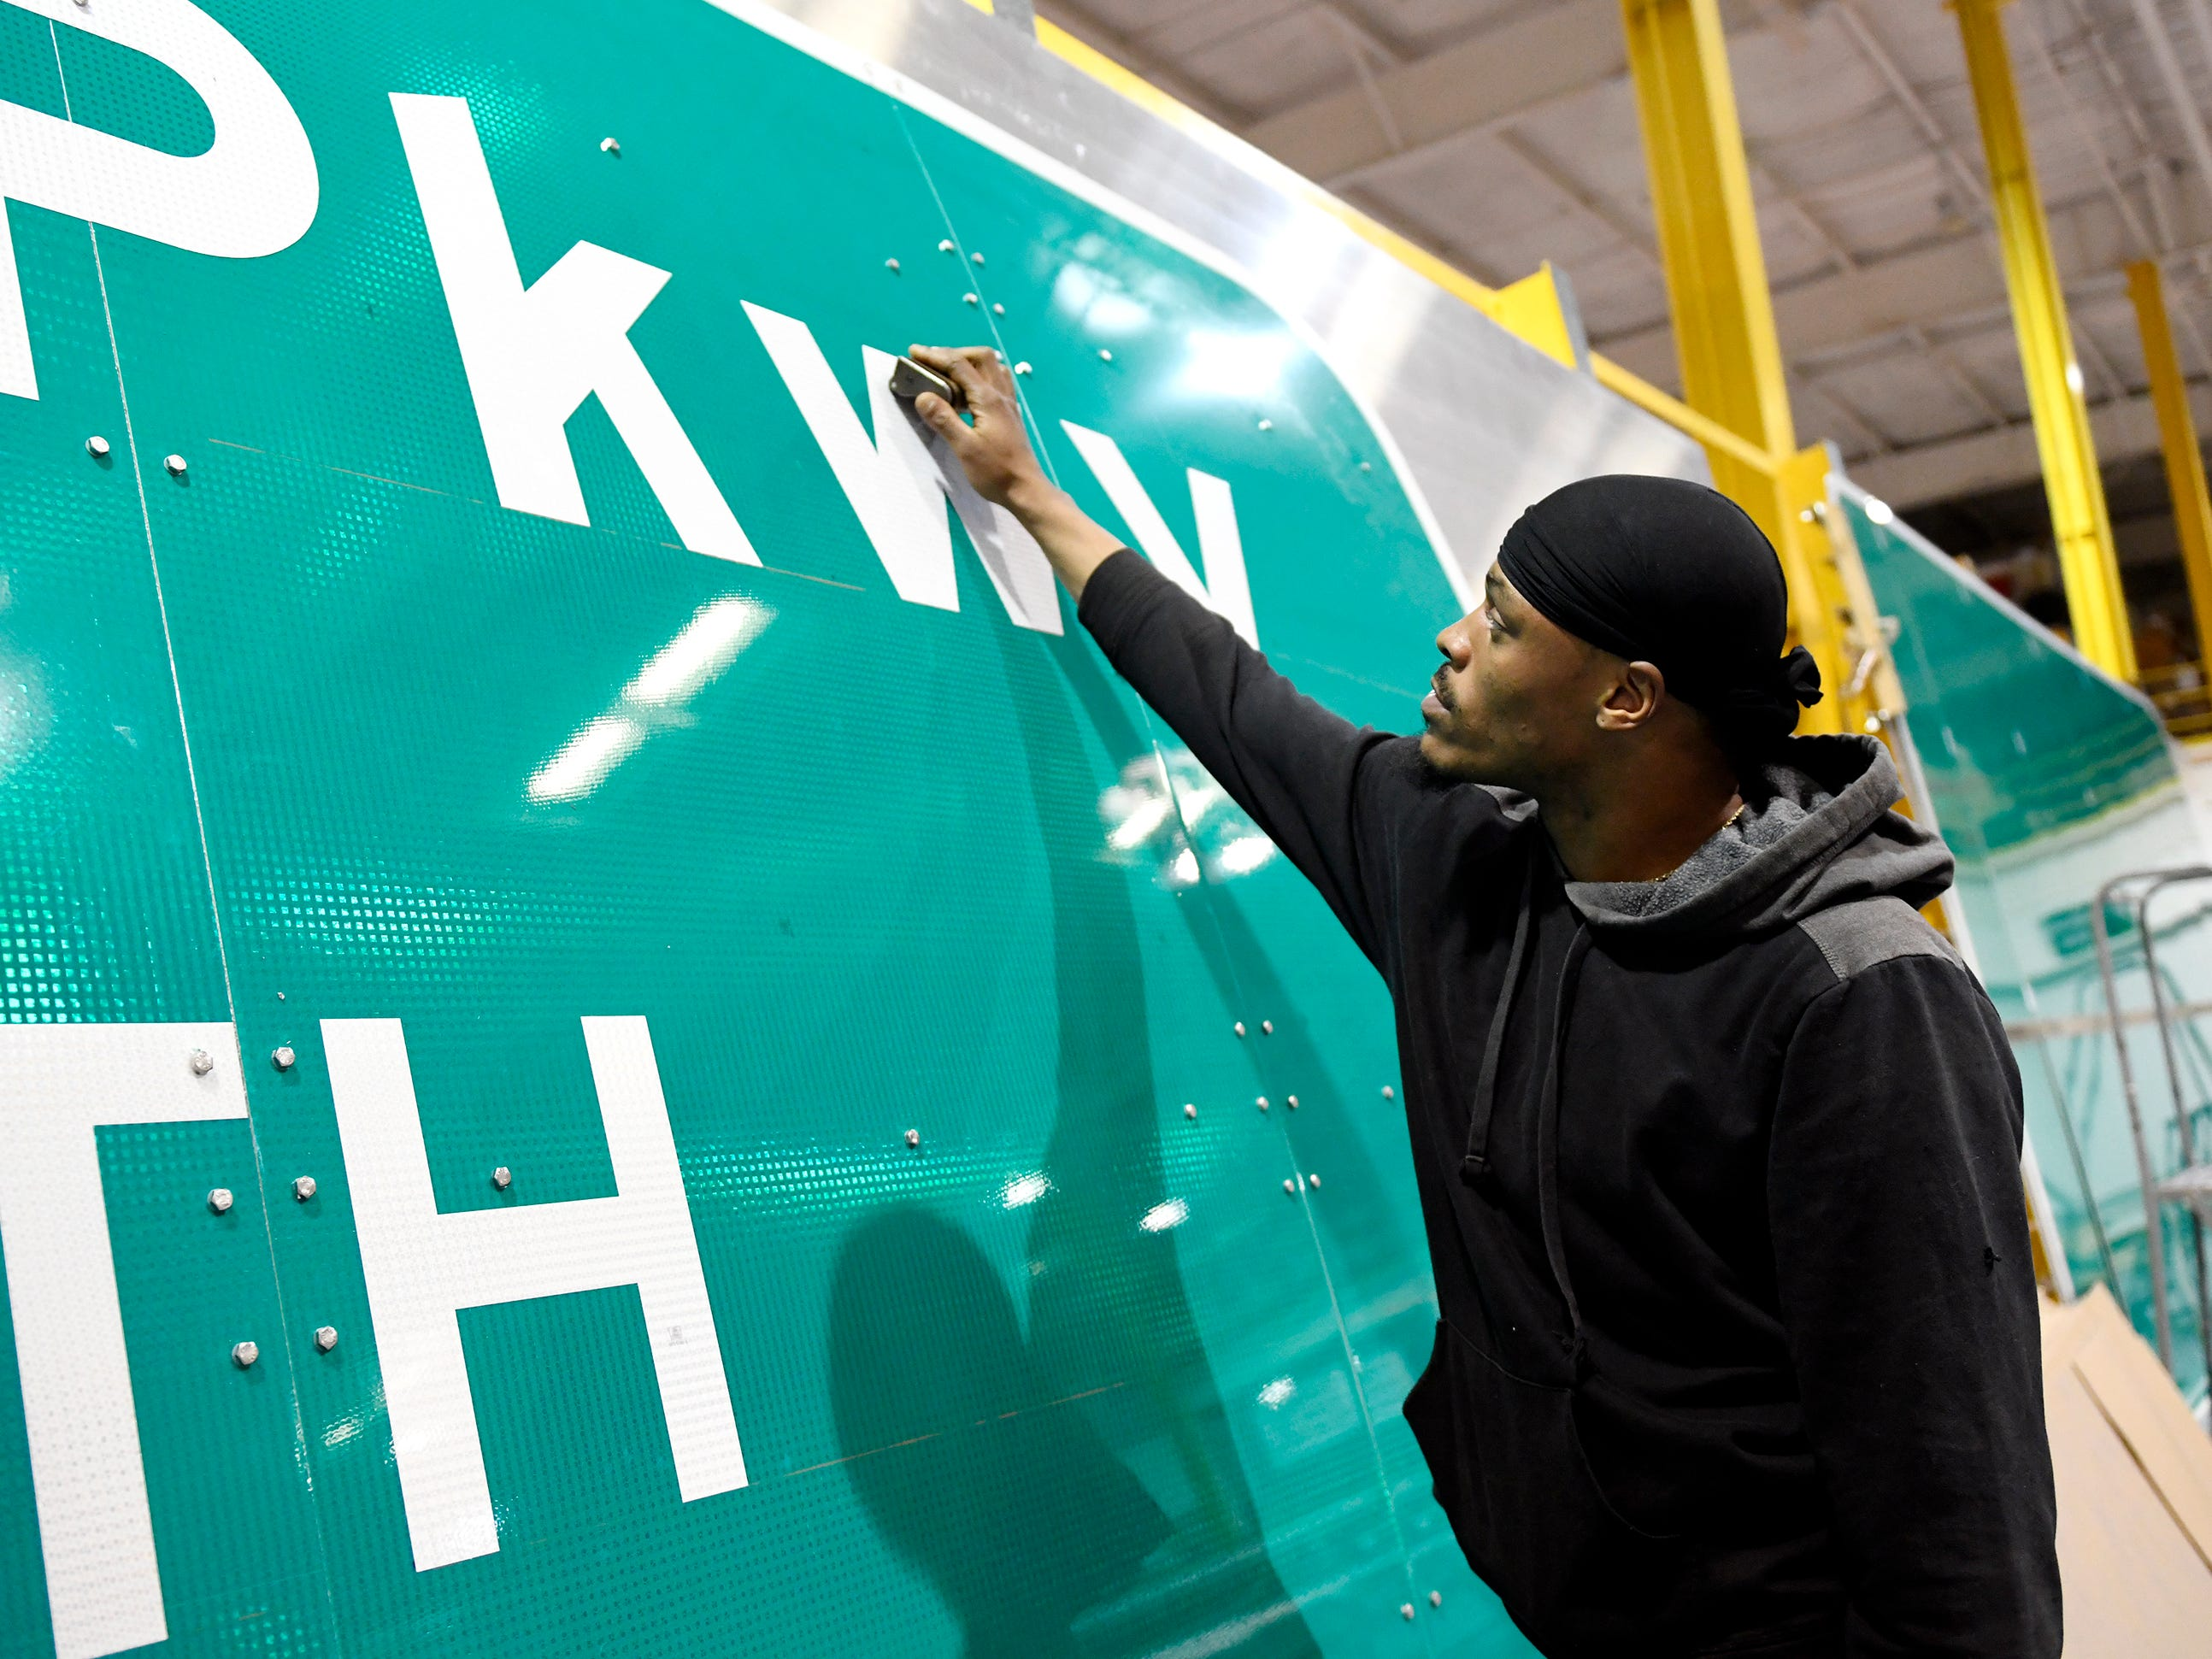 A Garden State Highway Products, Inc. employee works on a large highway sign on Tuesday, Mar. 12, 2019. The company also distributes a vast assortment of traffic safety and work zone construction products.